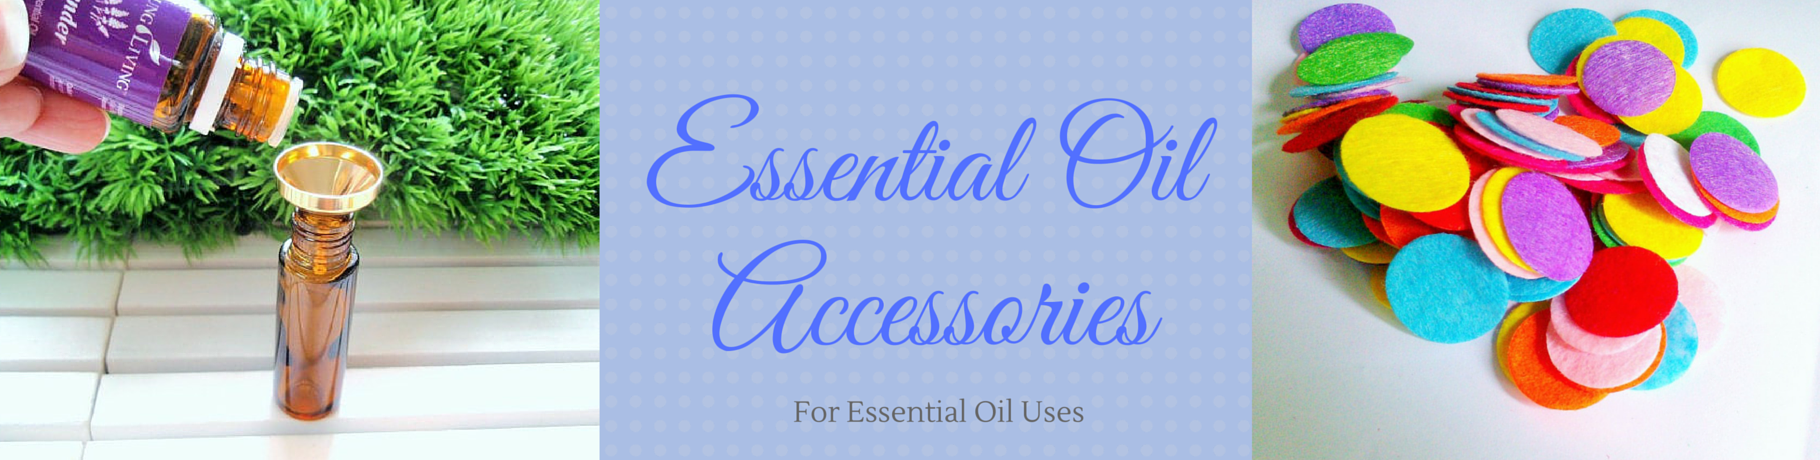 Essential Oil Accessories